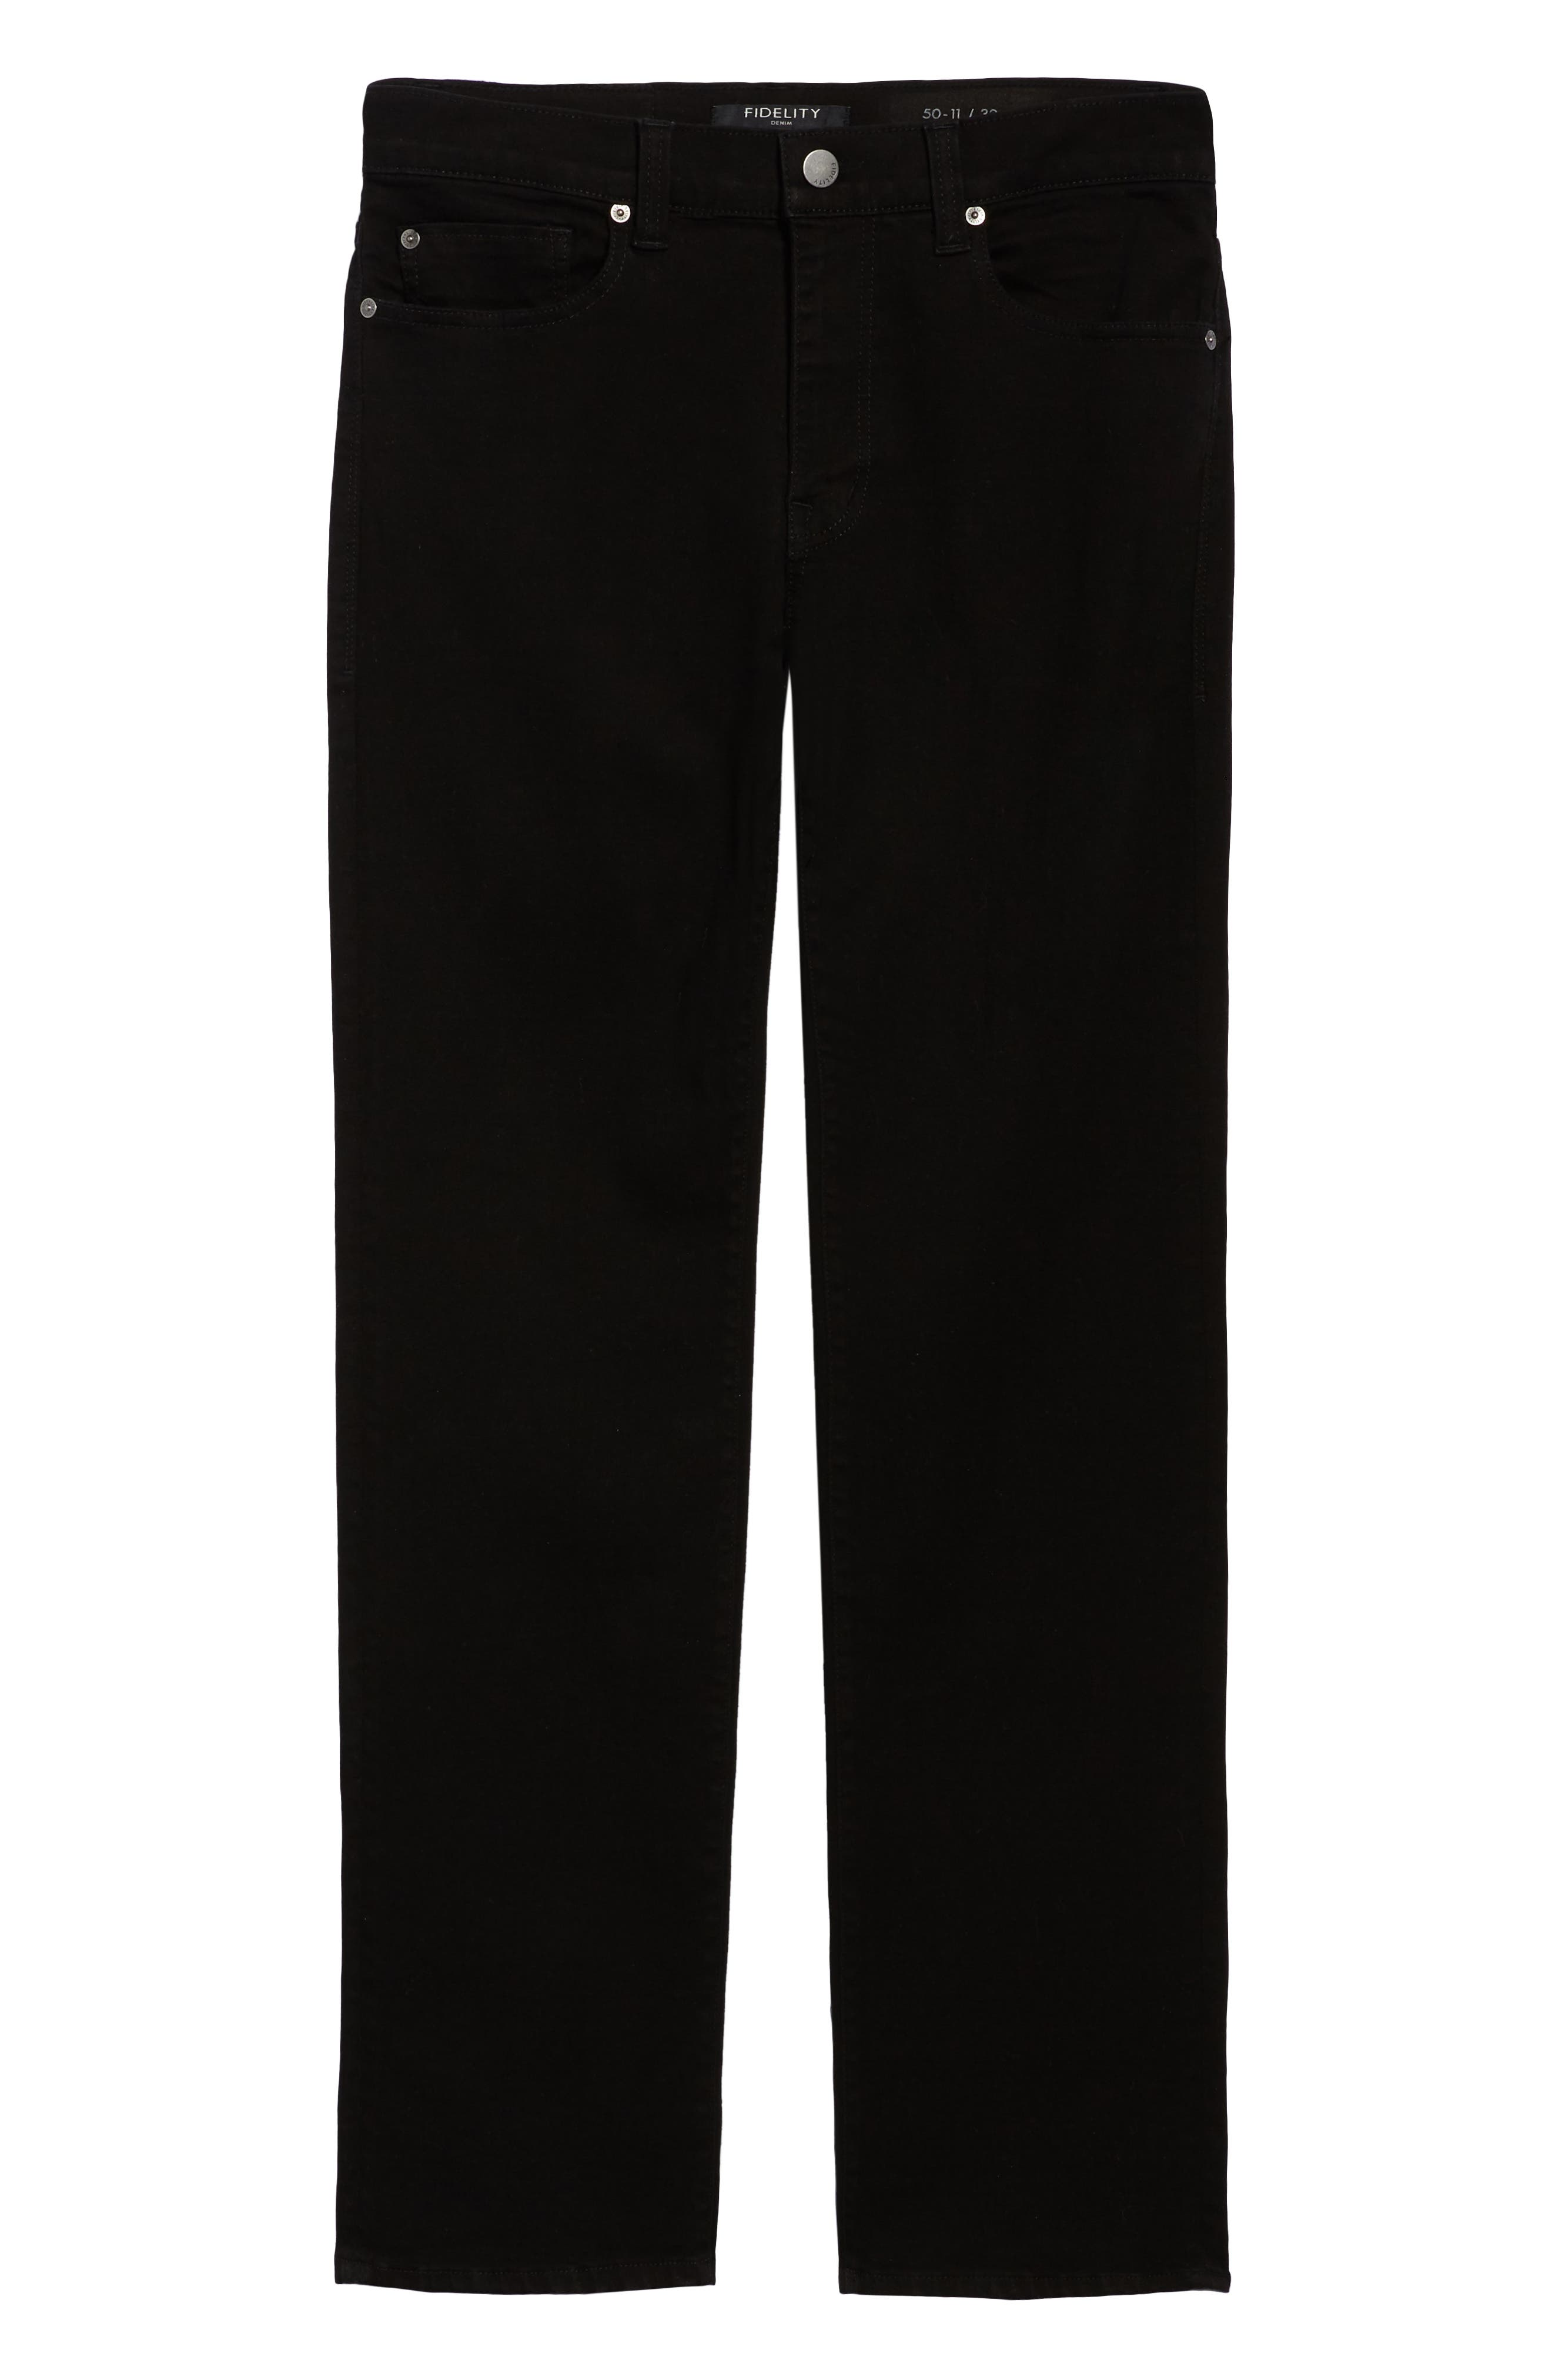 50-11 Relaxed Fit Jeans,                             Alternate thumbnail 6, color,                             GOTHAM BLACK